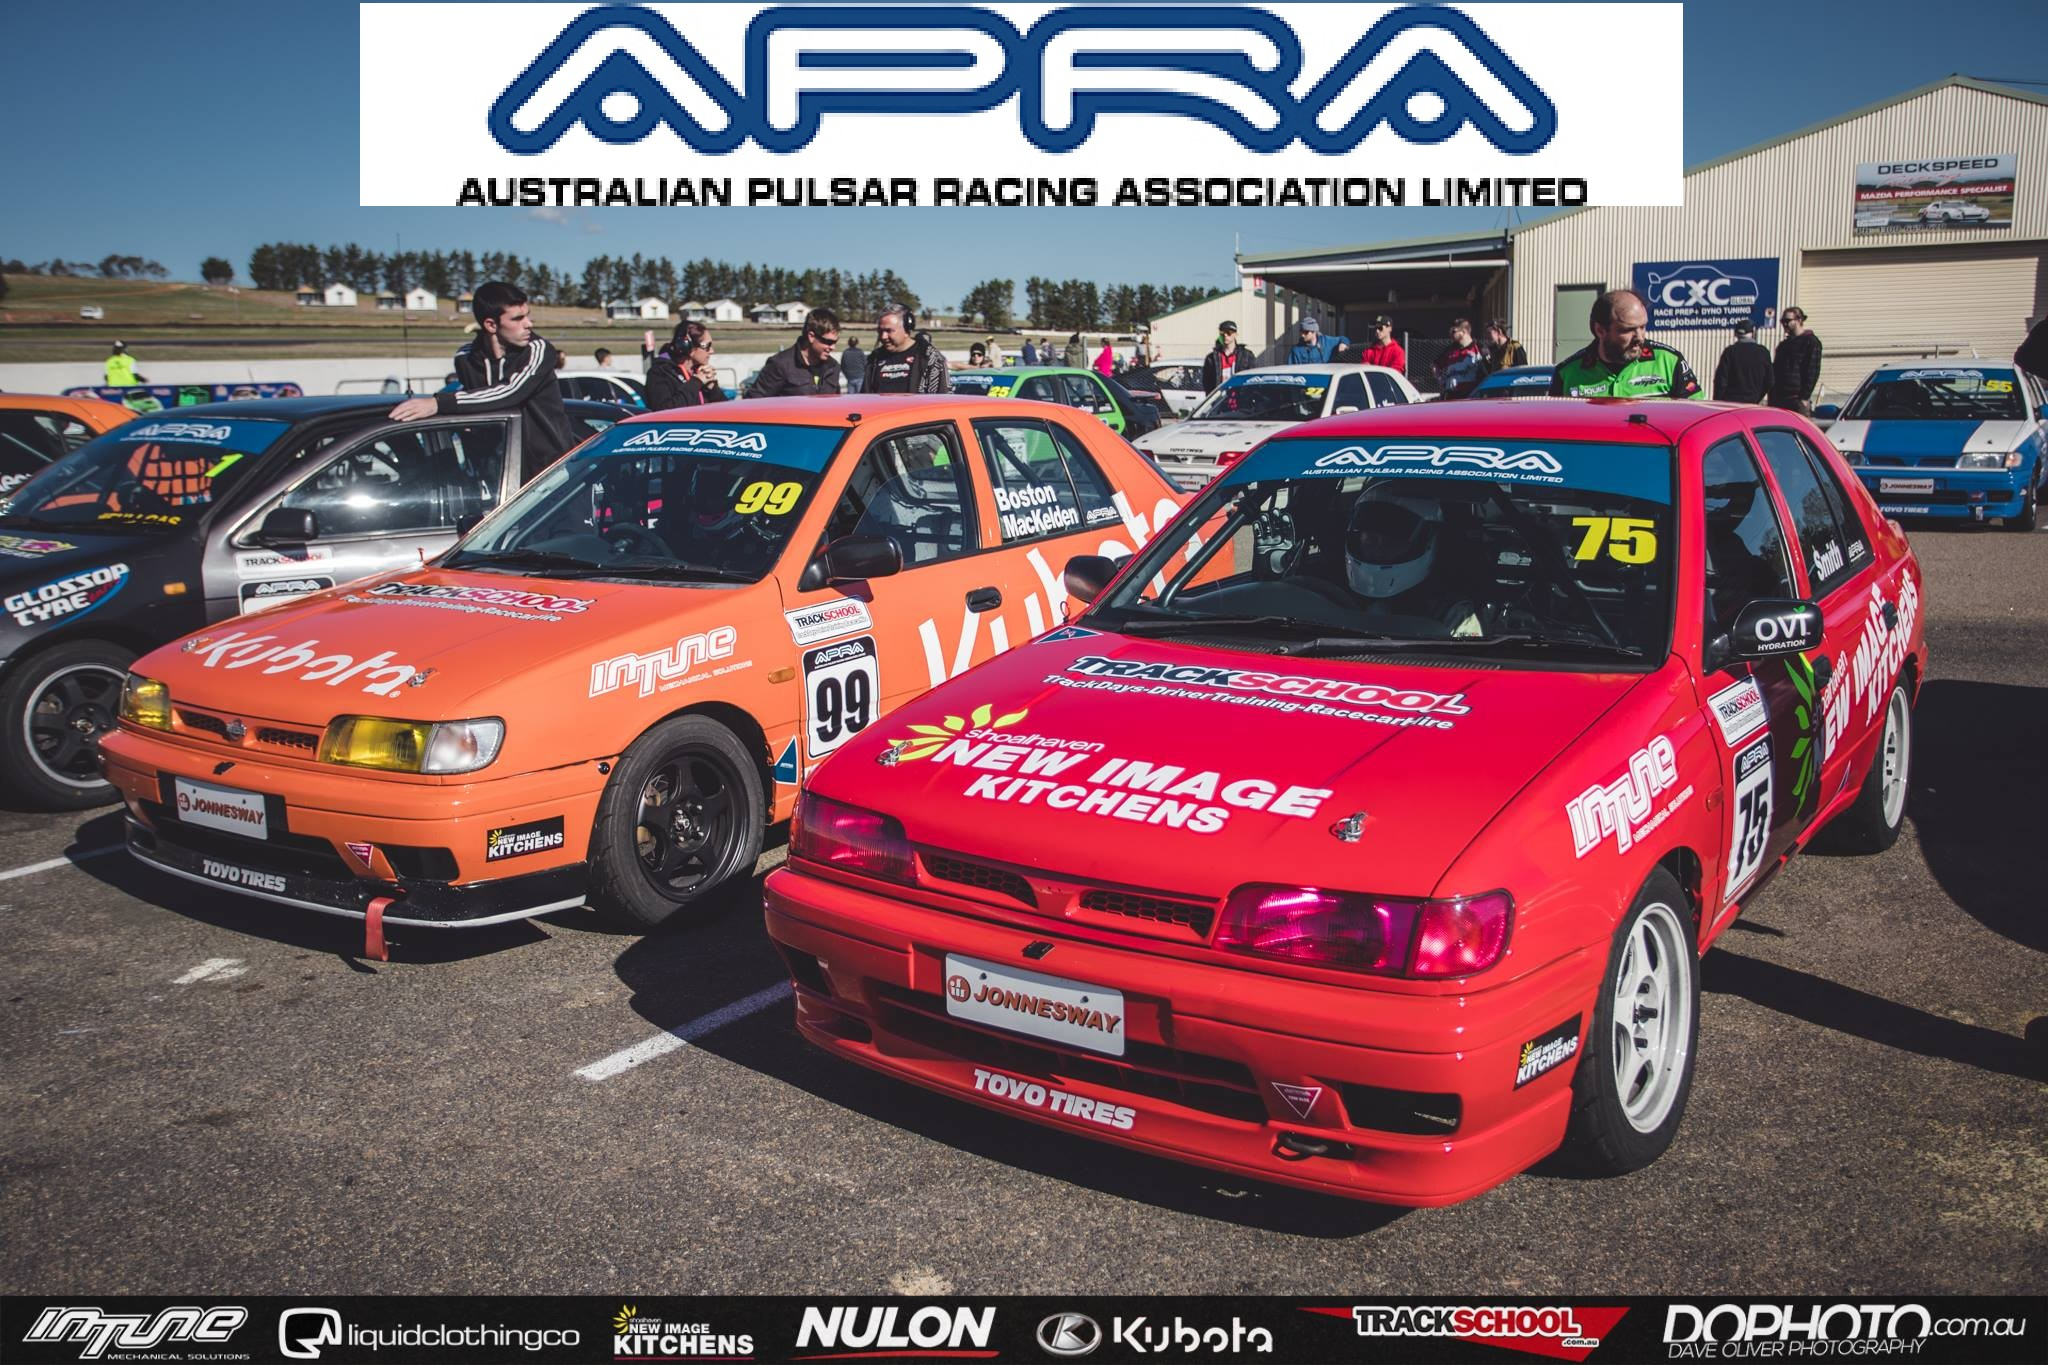 Australian_Pulsar_Racing_Association_Logo.jpg